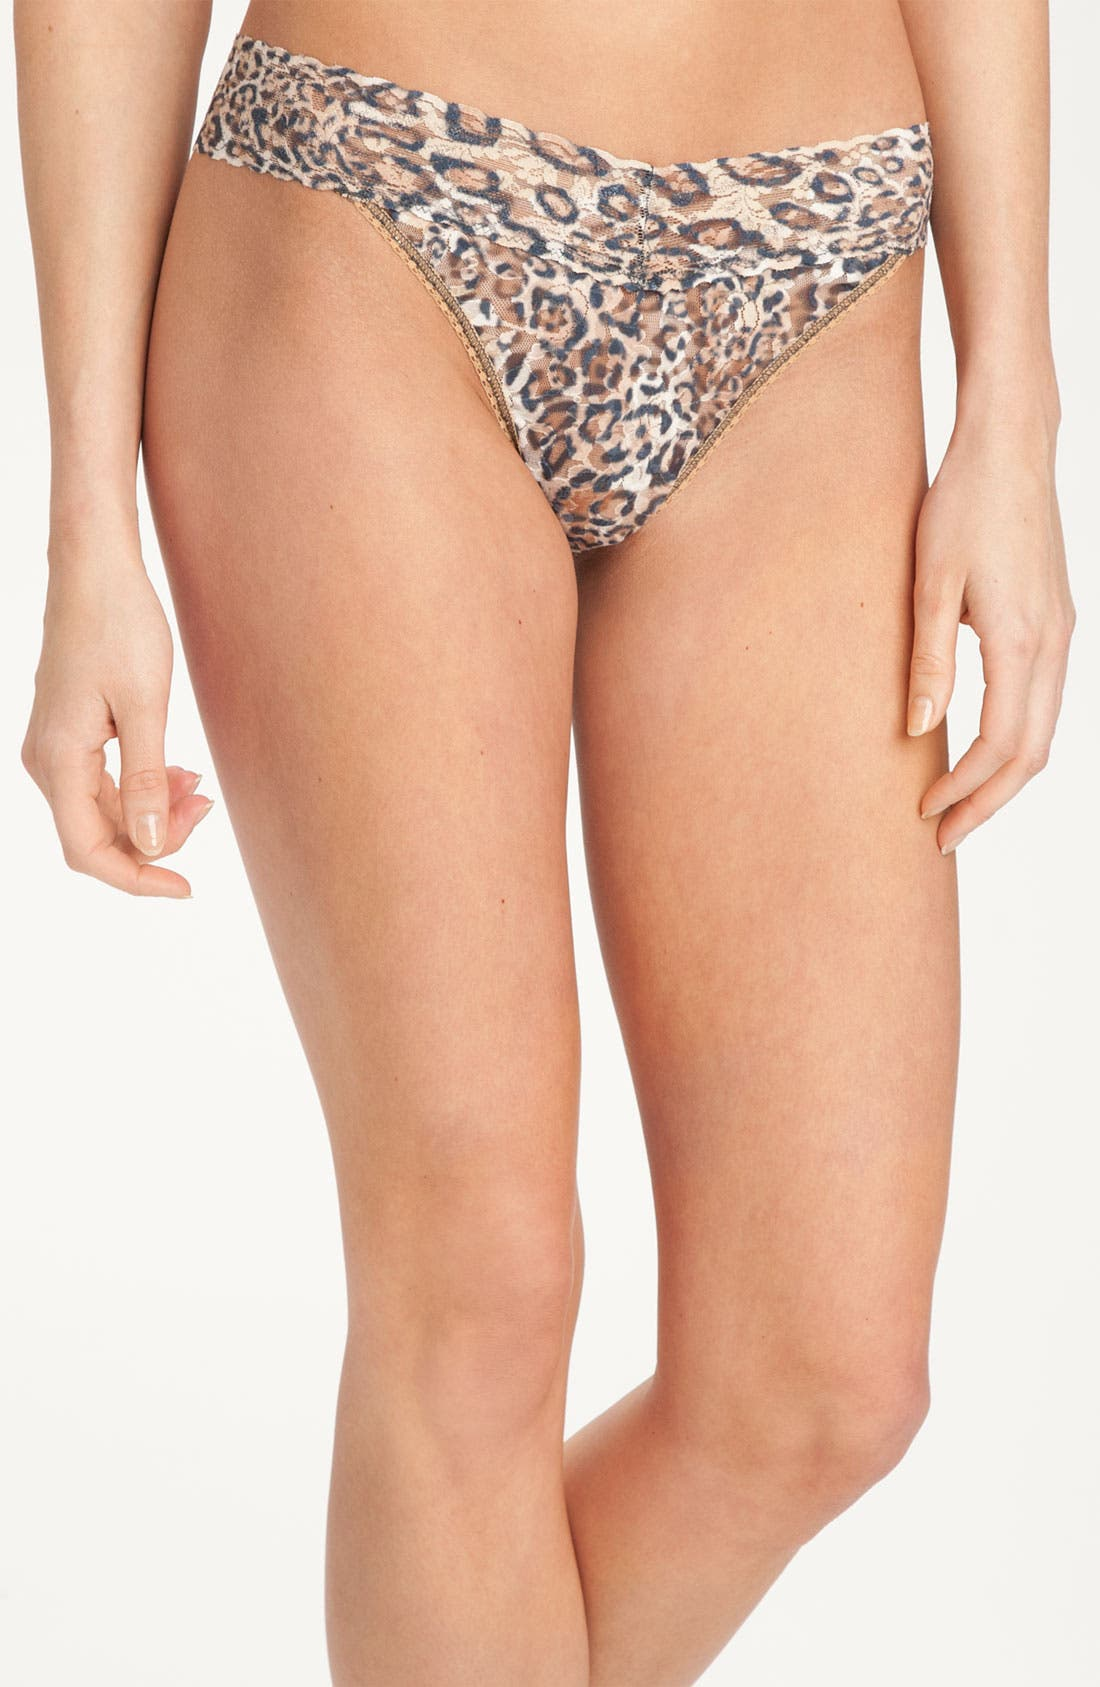 Alternate Image 1 Selected - Hanky Panky 'Leopard' Original Rise Thong